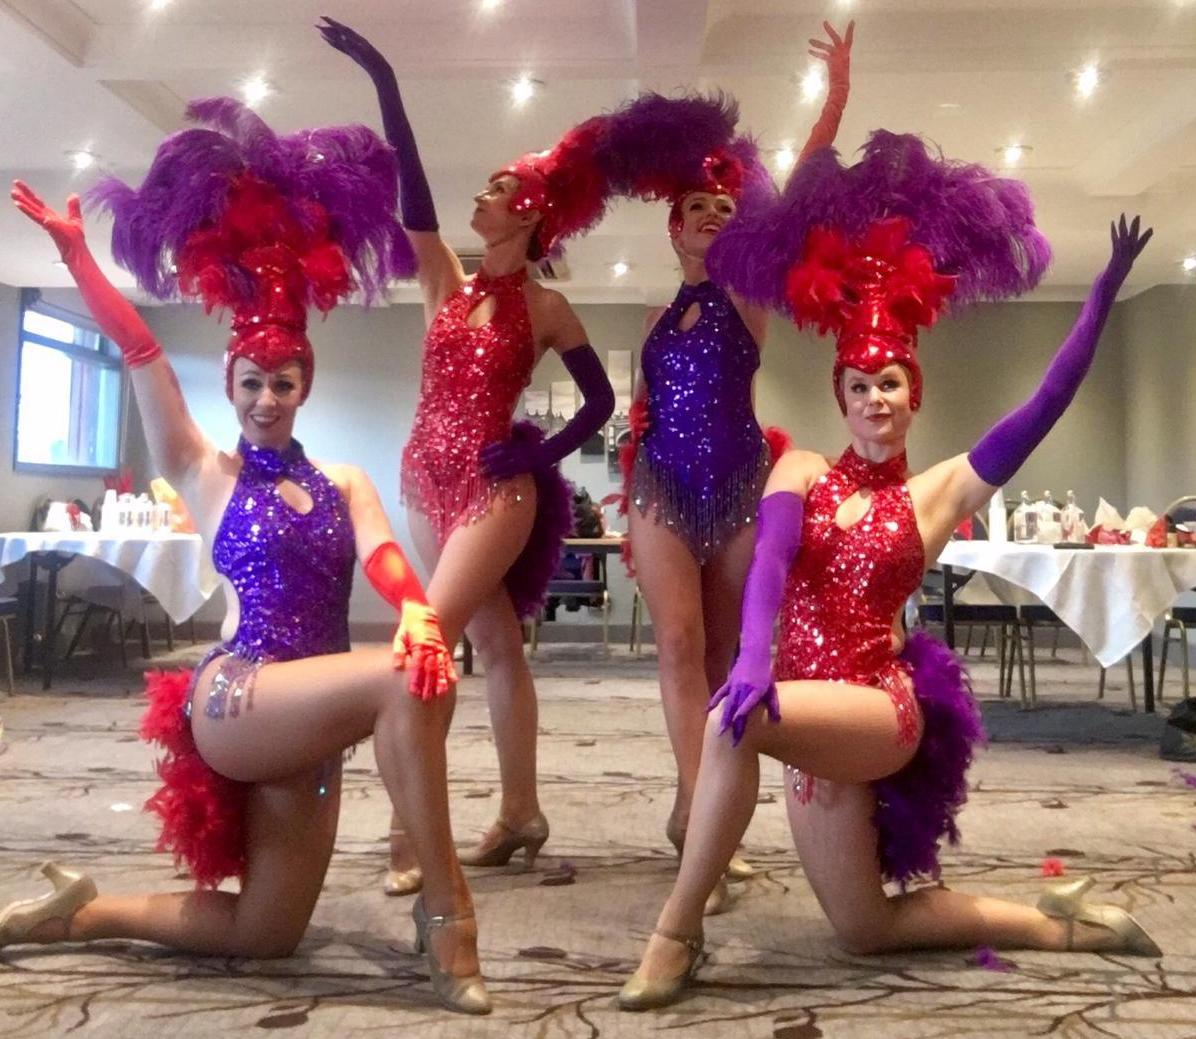 Showgirls in red and purple feathered and sequin costumes